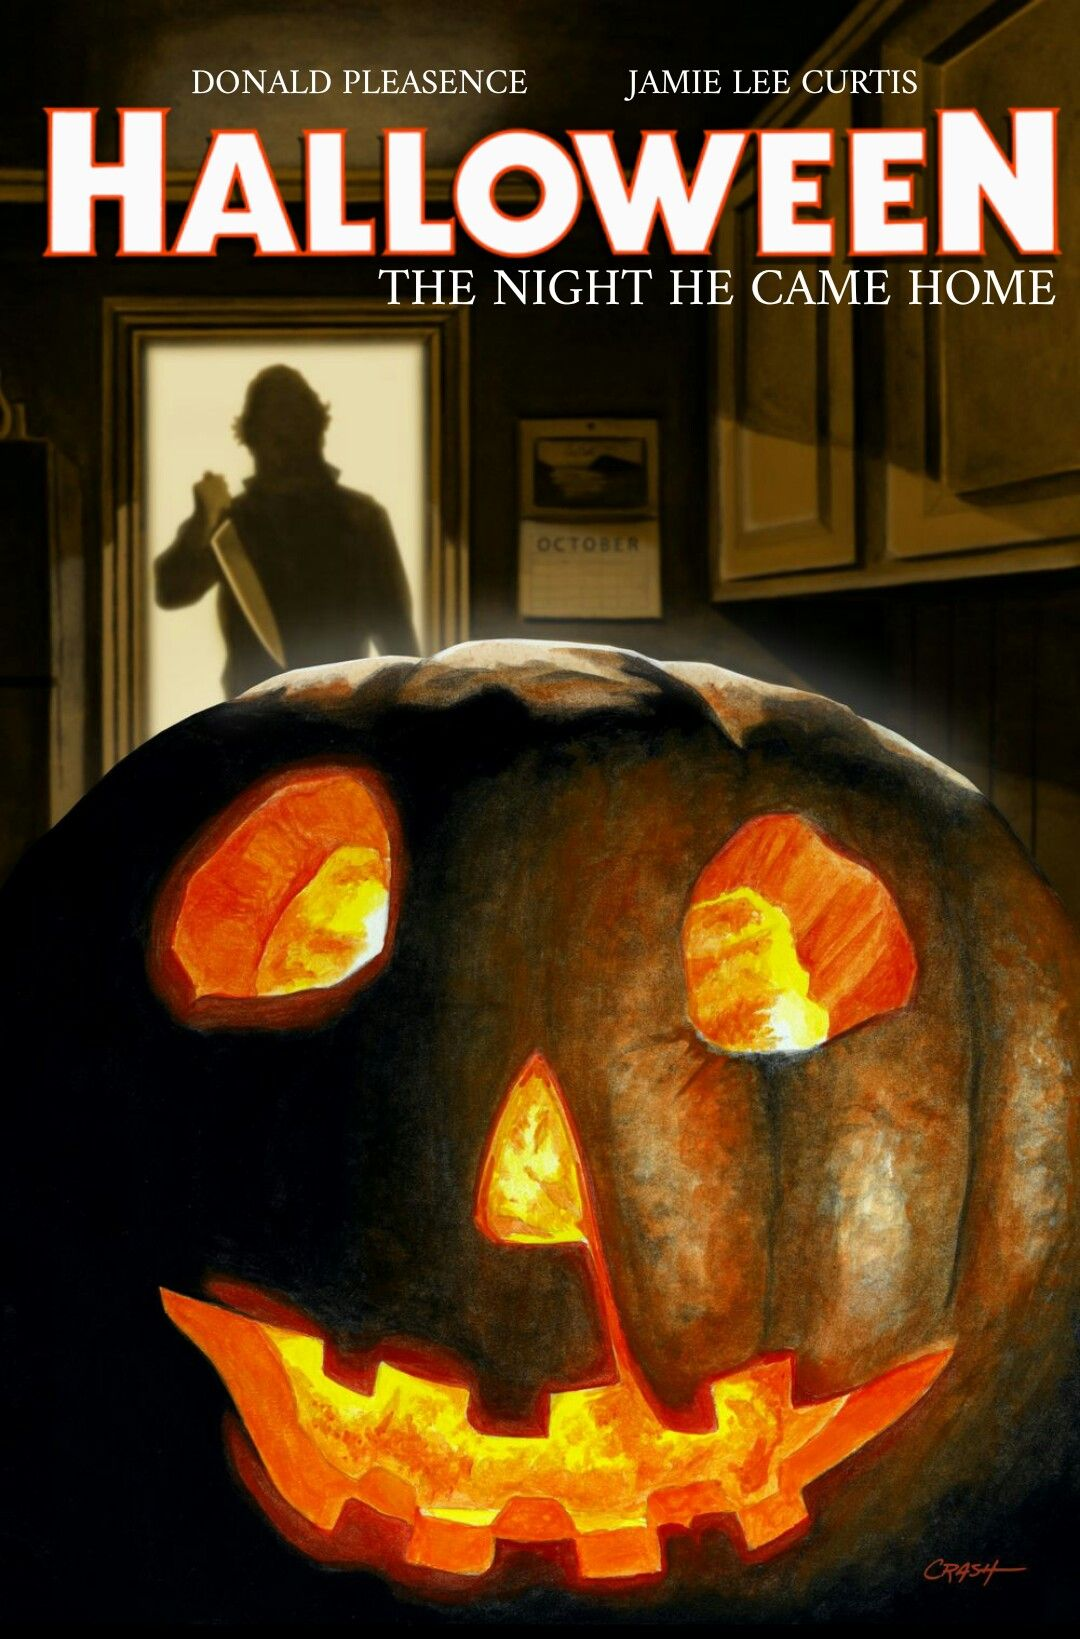 Halloween Movie Pumpkin 2018.Halloween Horror Movie Slasher Horror